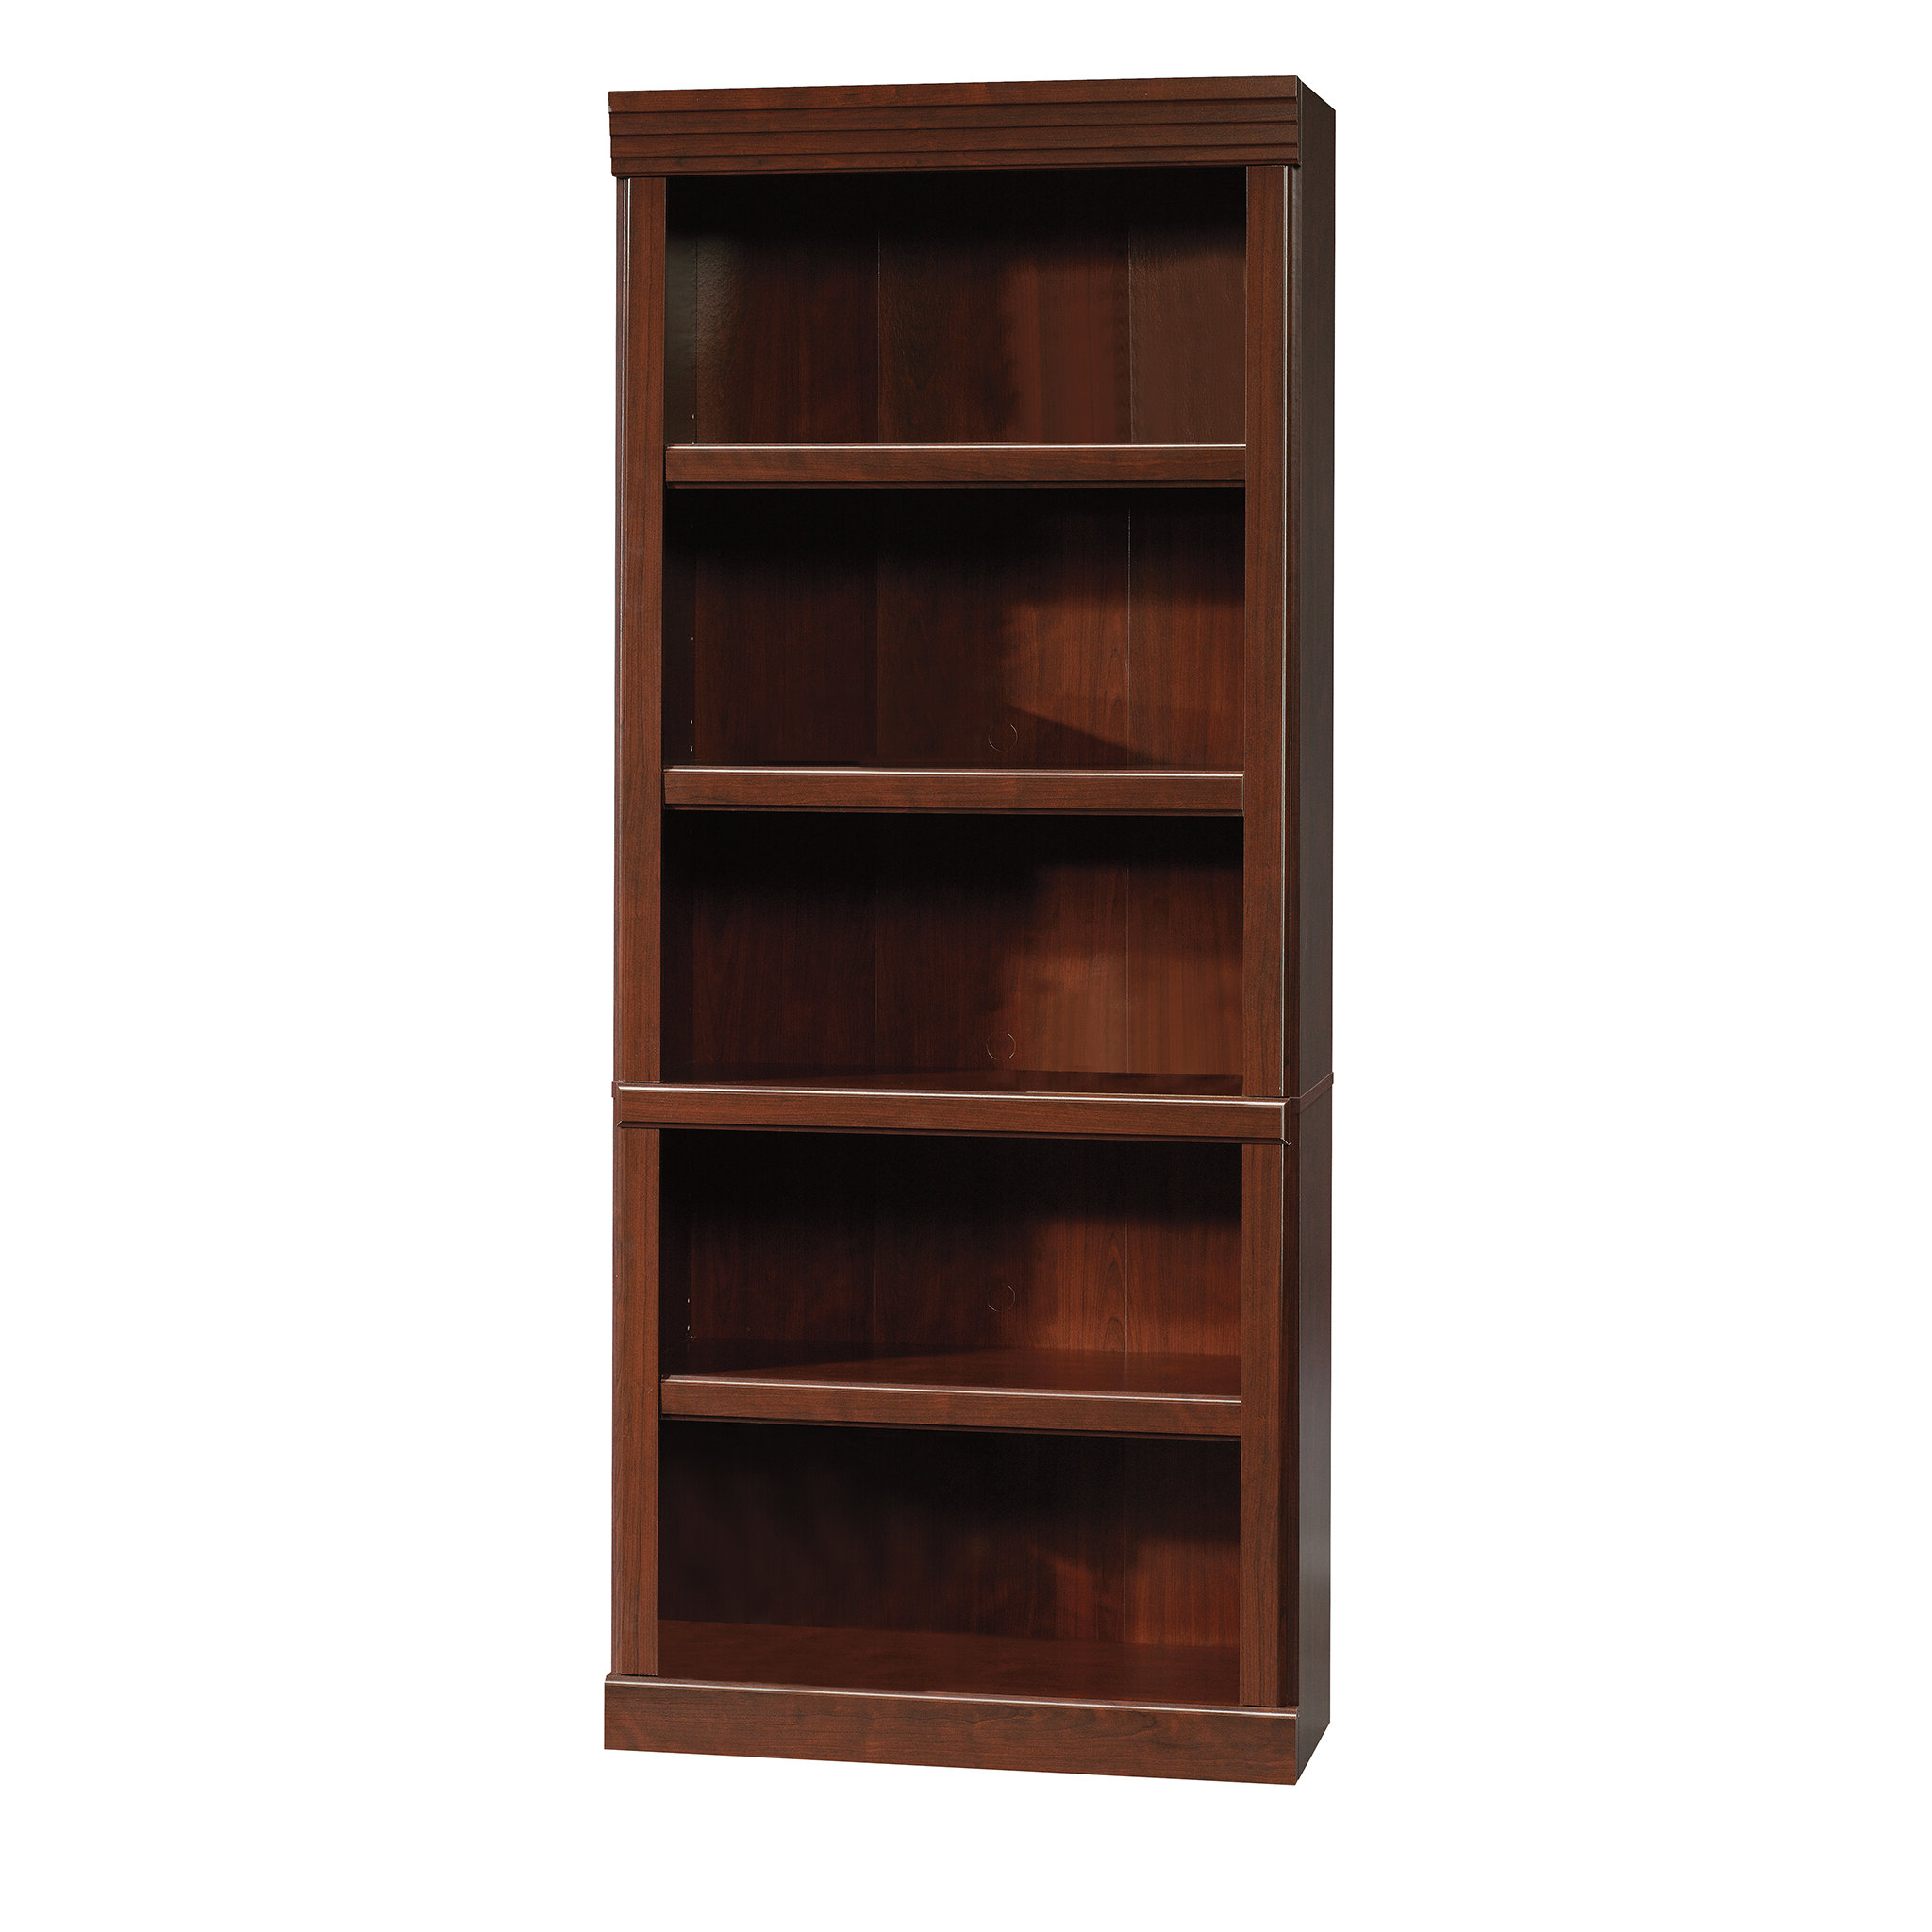 2019 Tami Standard Bookcases With Farmhouse & Rustic Standard Bookcases & Bookshelves (View 19 of 20)